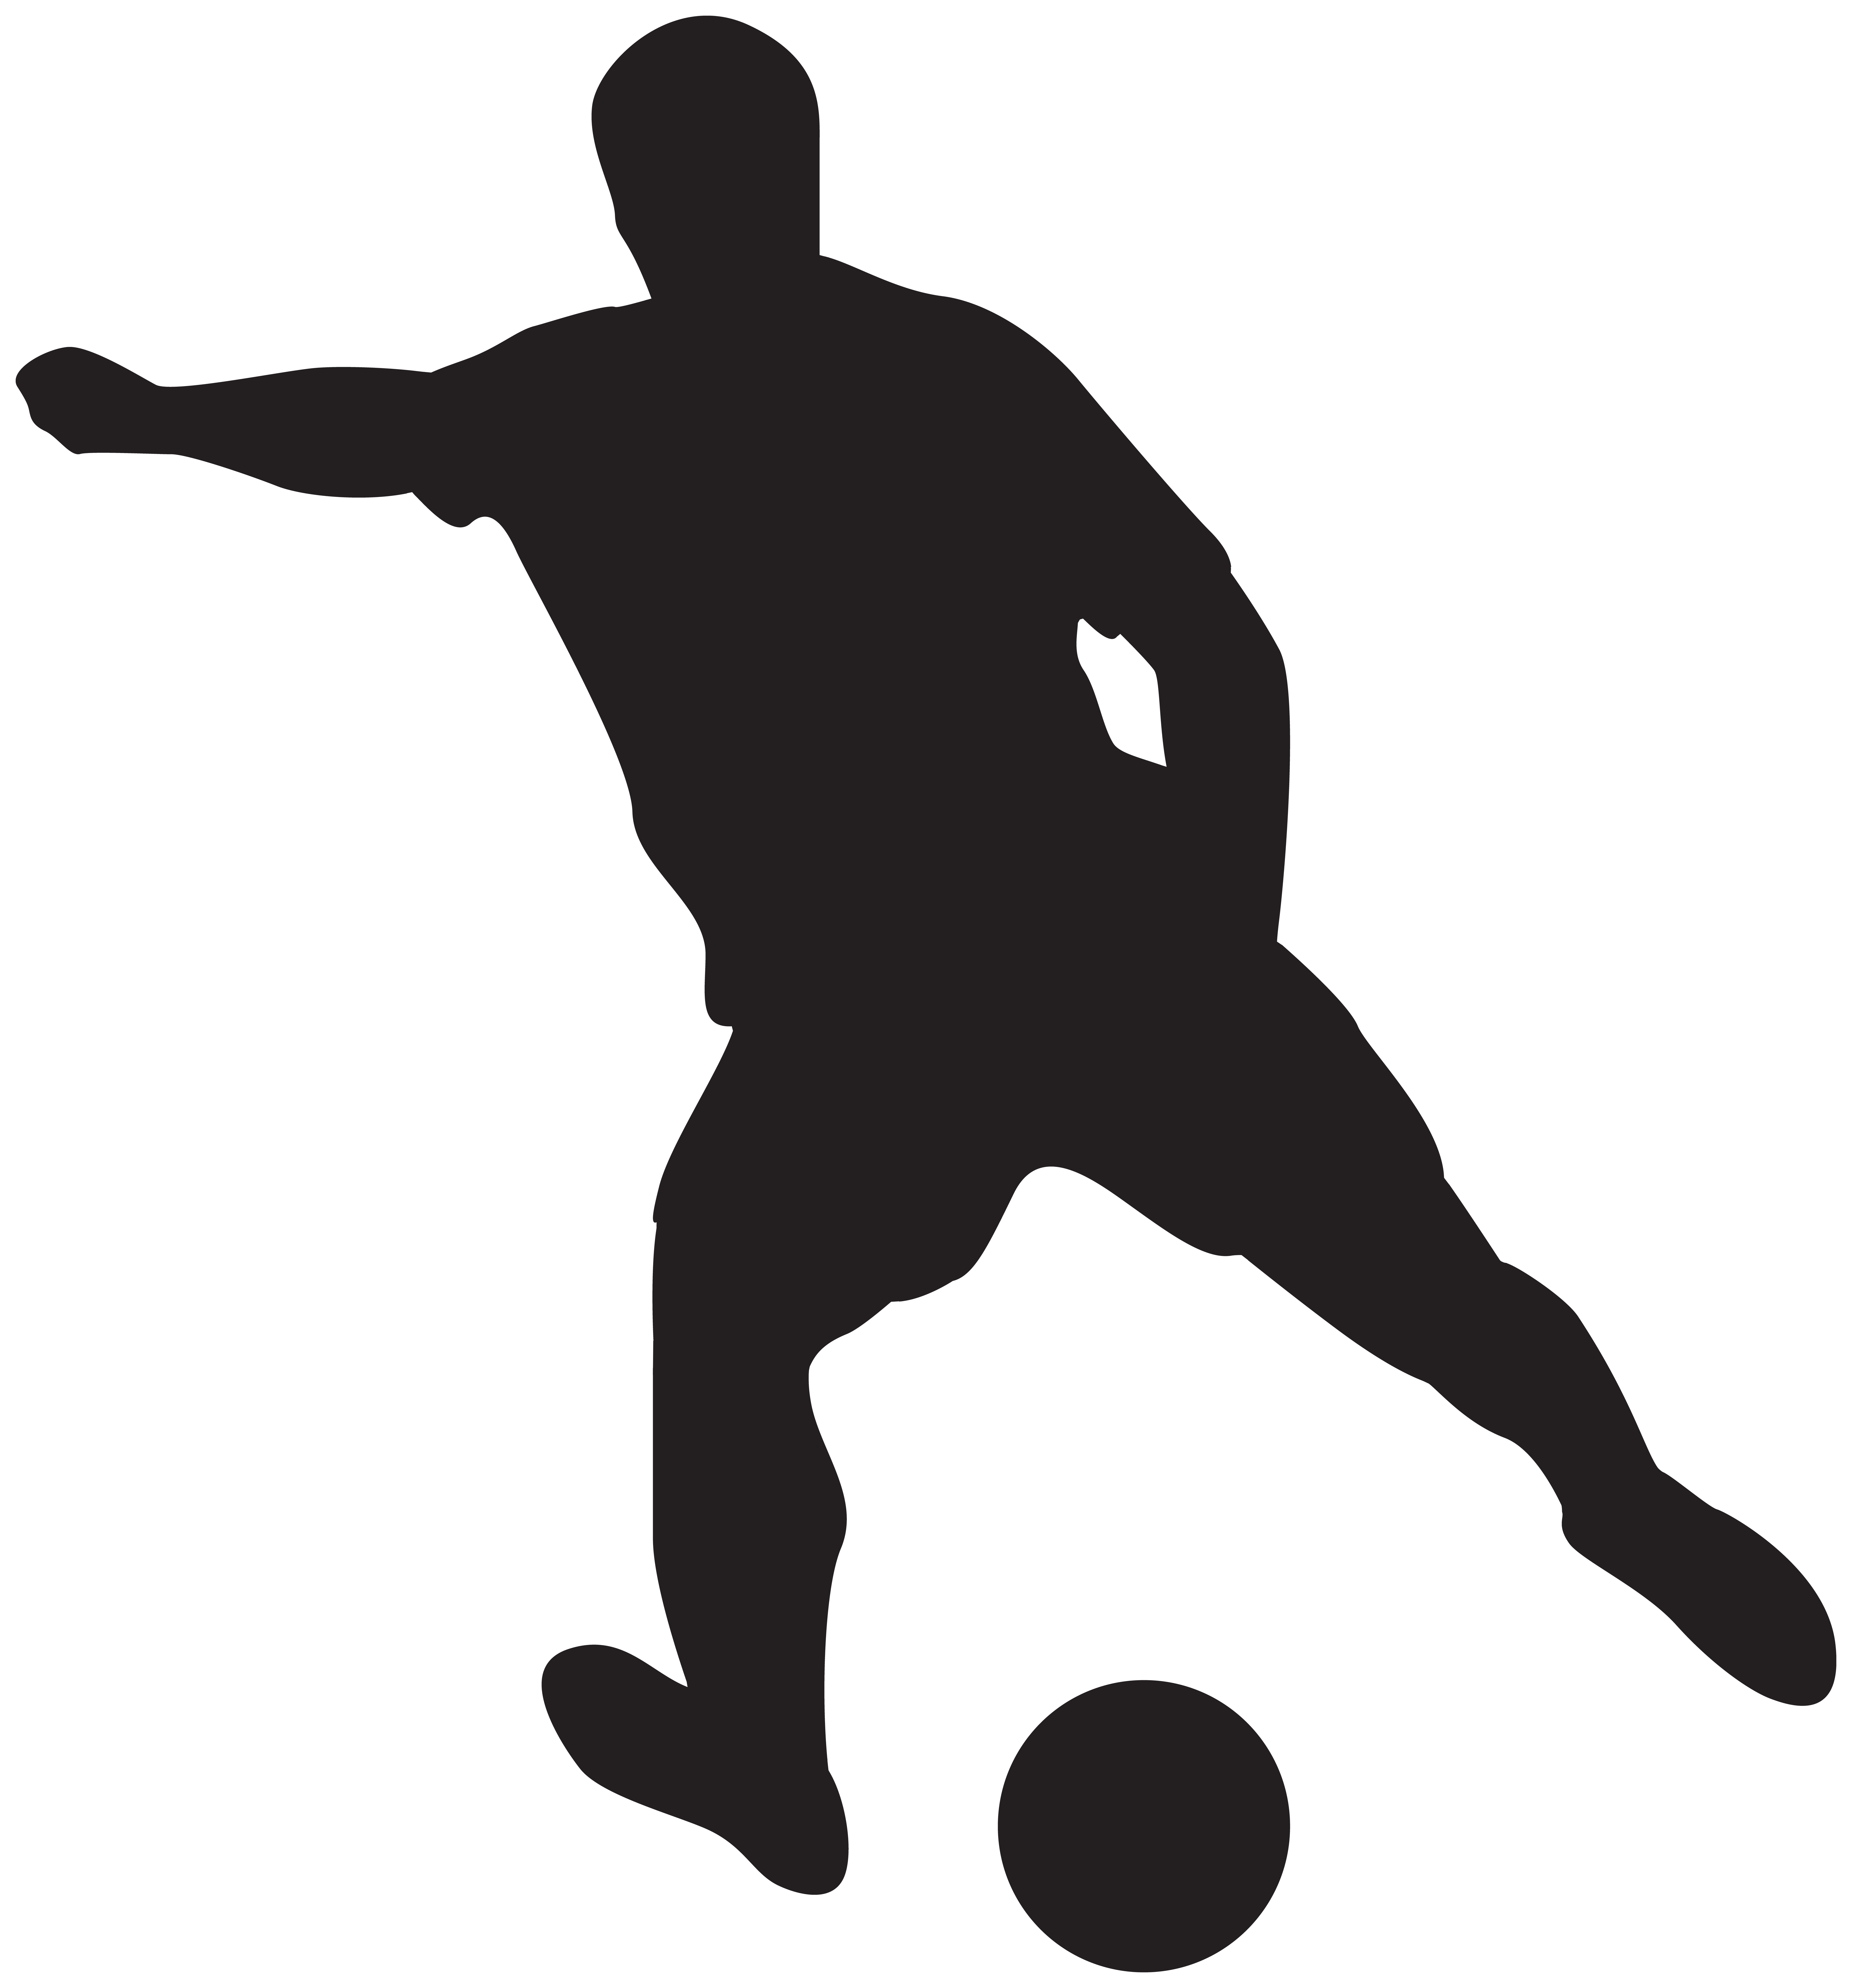 Soccer Player Silhouettes Clipart Image.